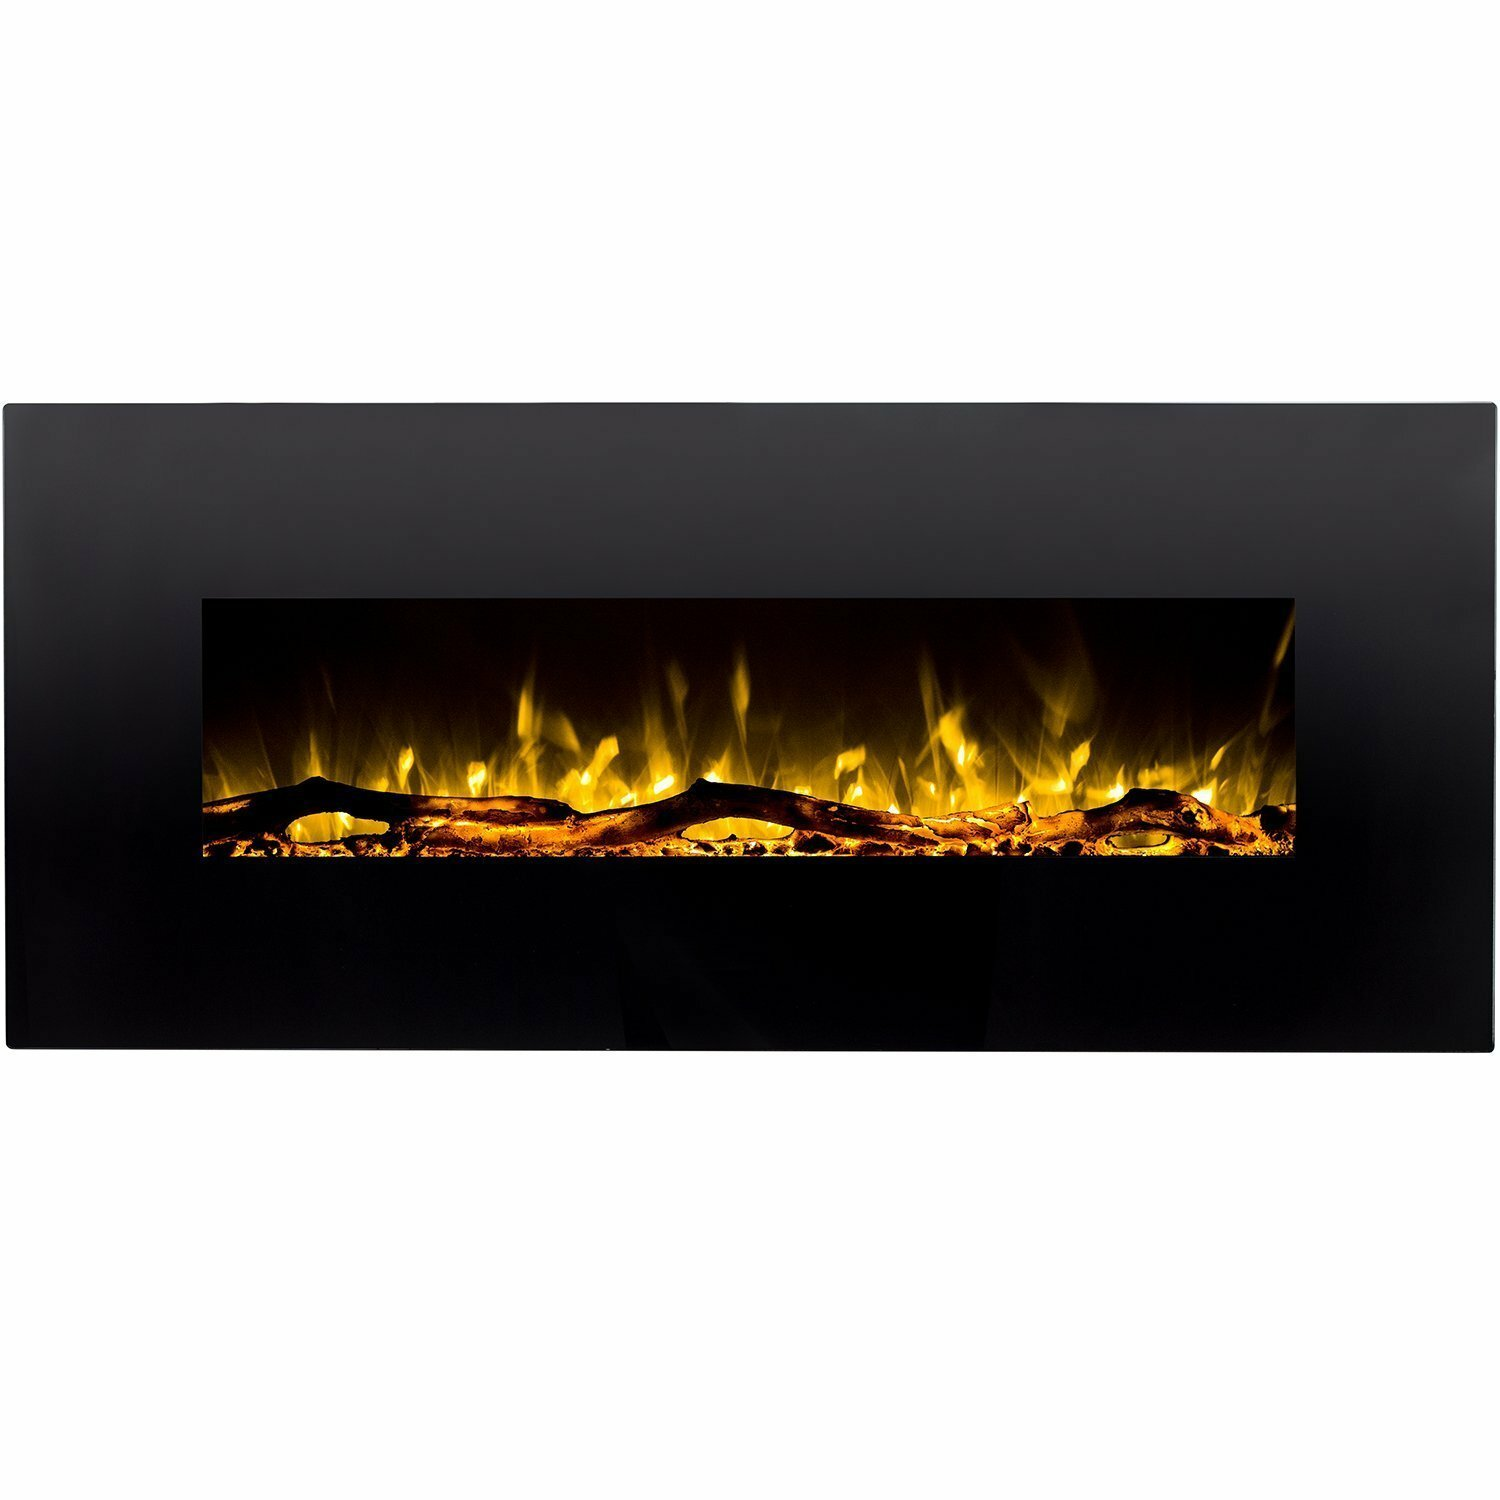 Surprising Depasquale Wall Mounted Electric Fireplace Interior Design Ideas Skatsoteloinfo